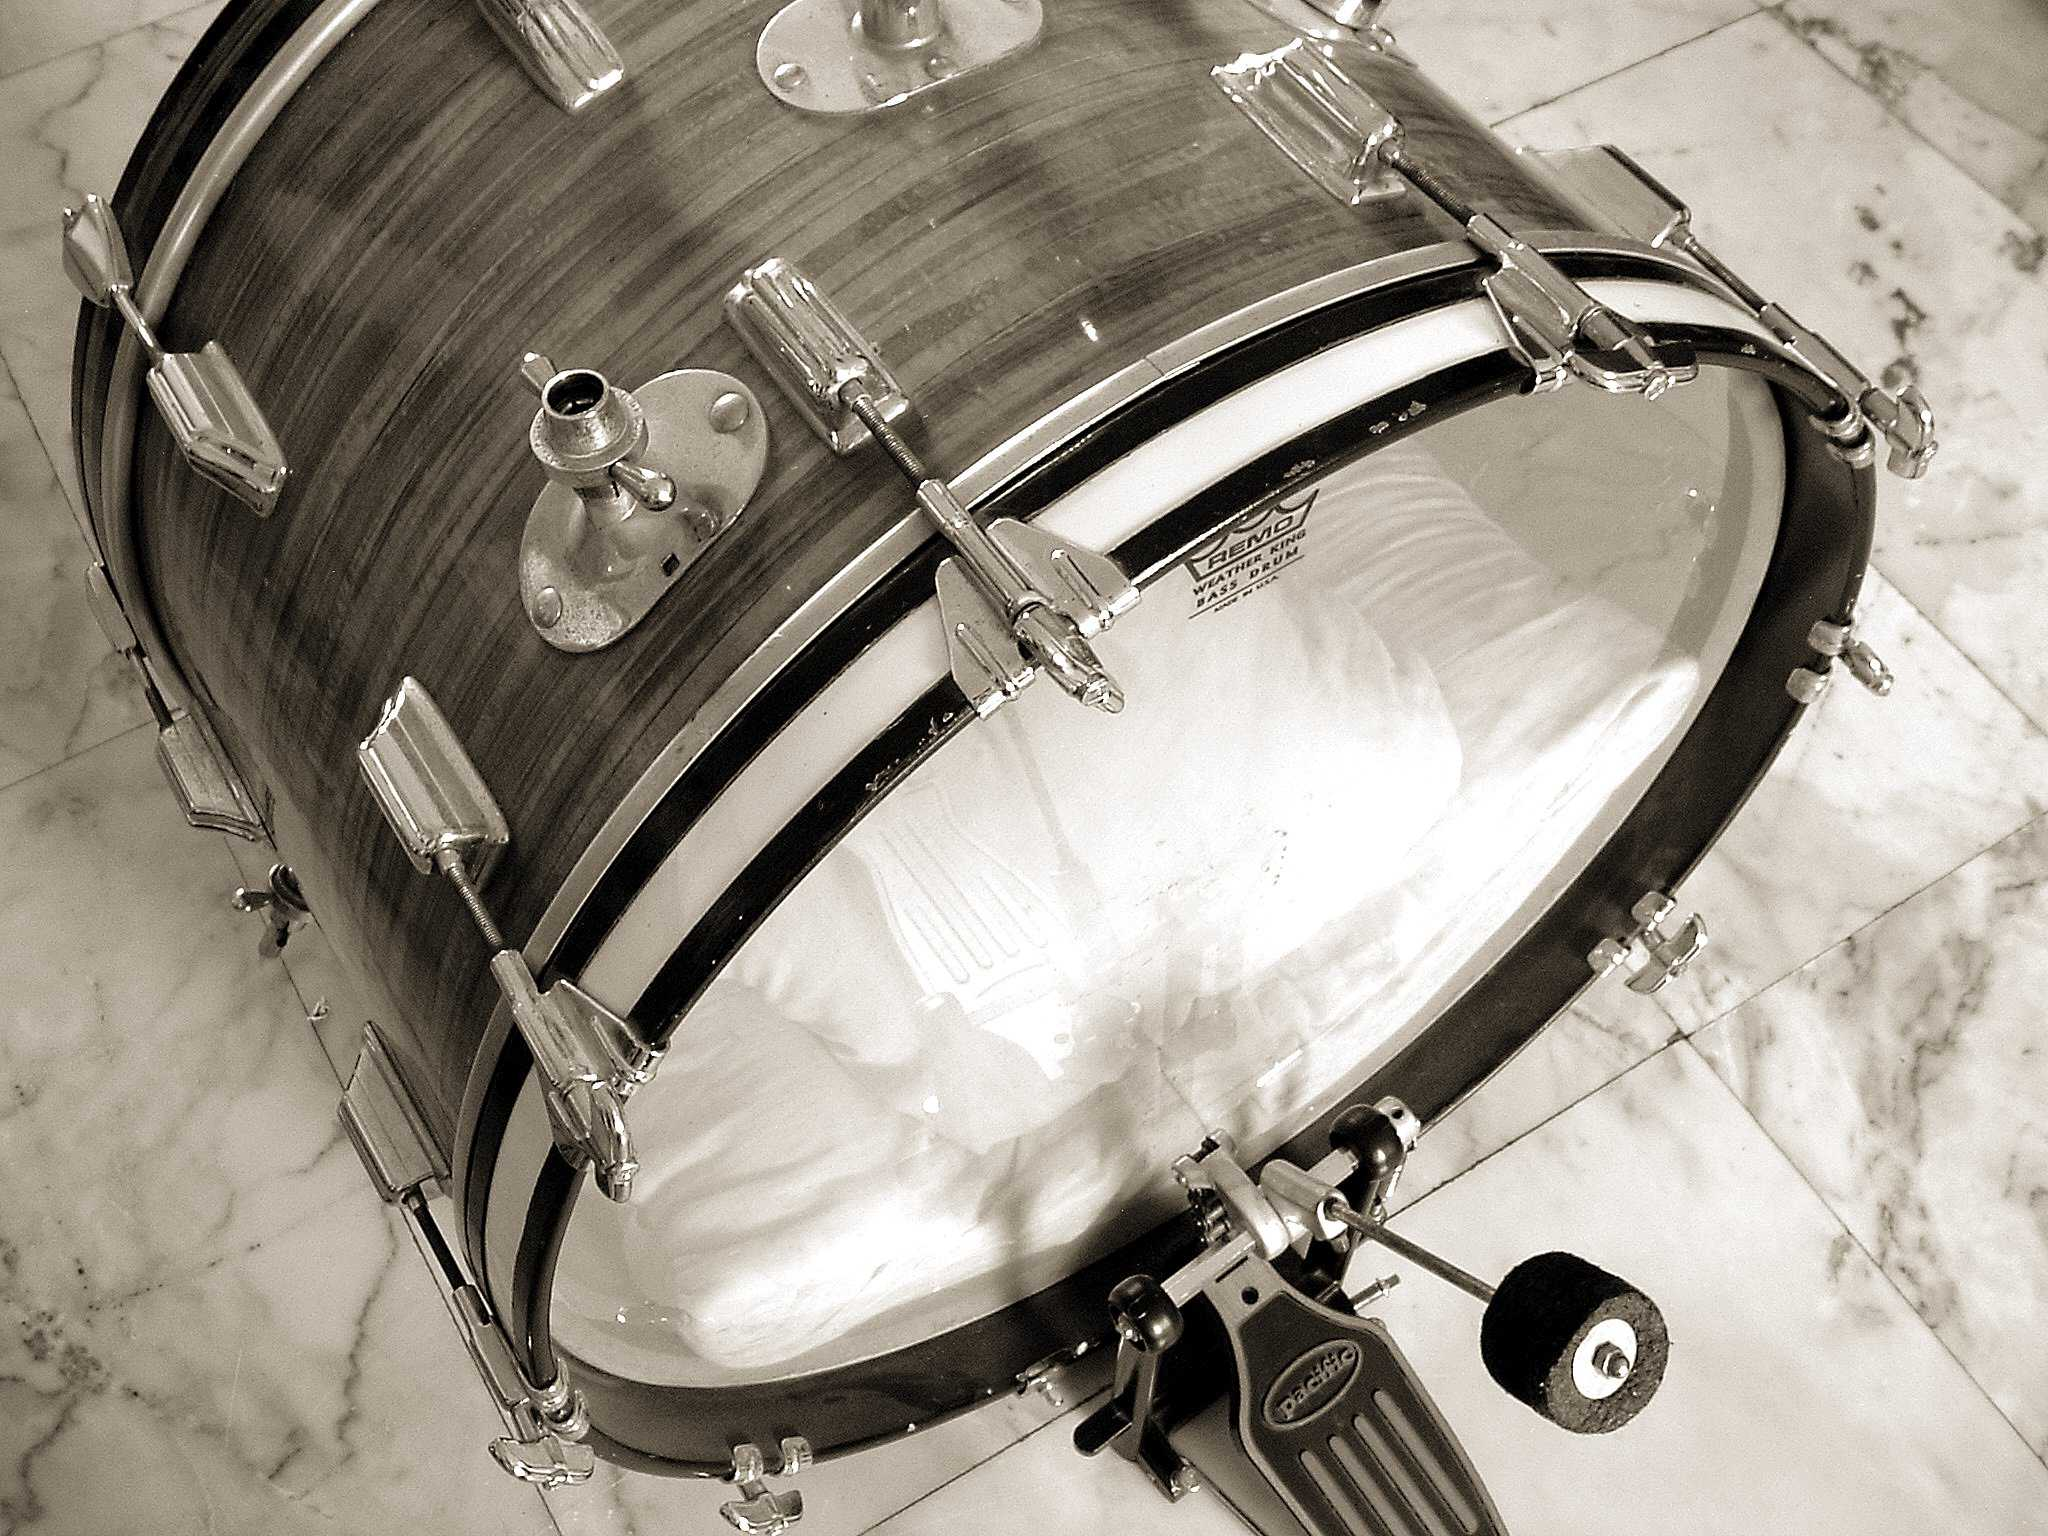 photo of a bass drum